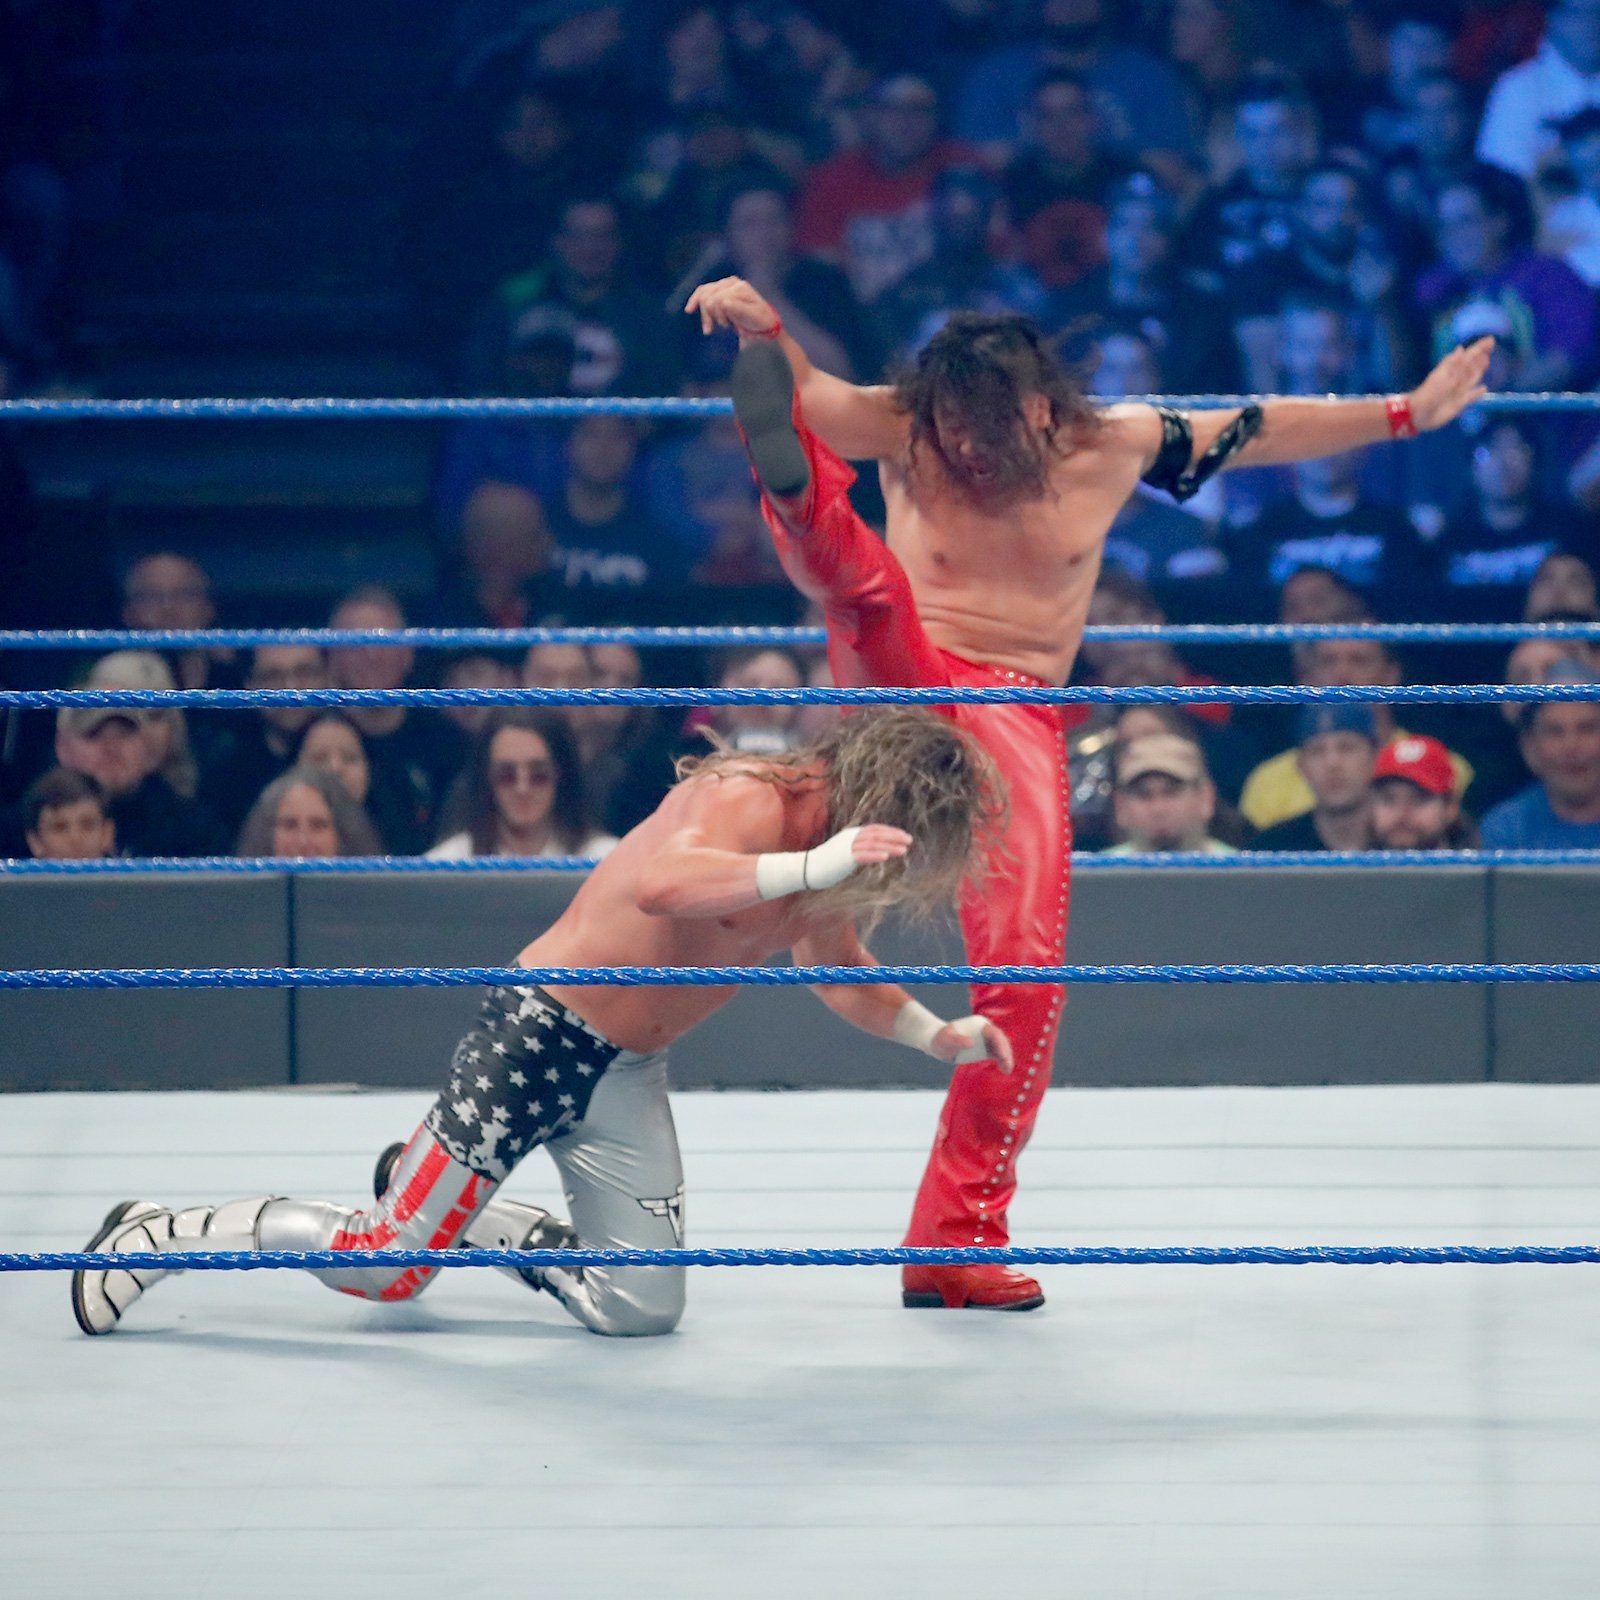 Turning the tables on The Showoff, Nakamura unleashes his world-renowned Strong Style.